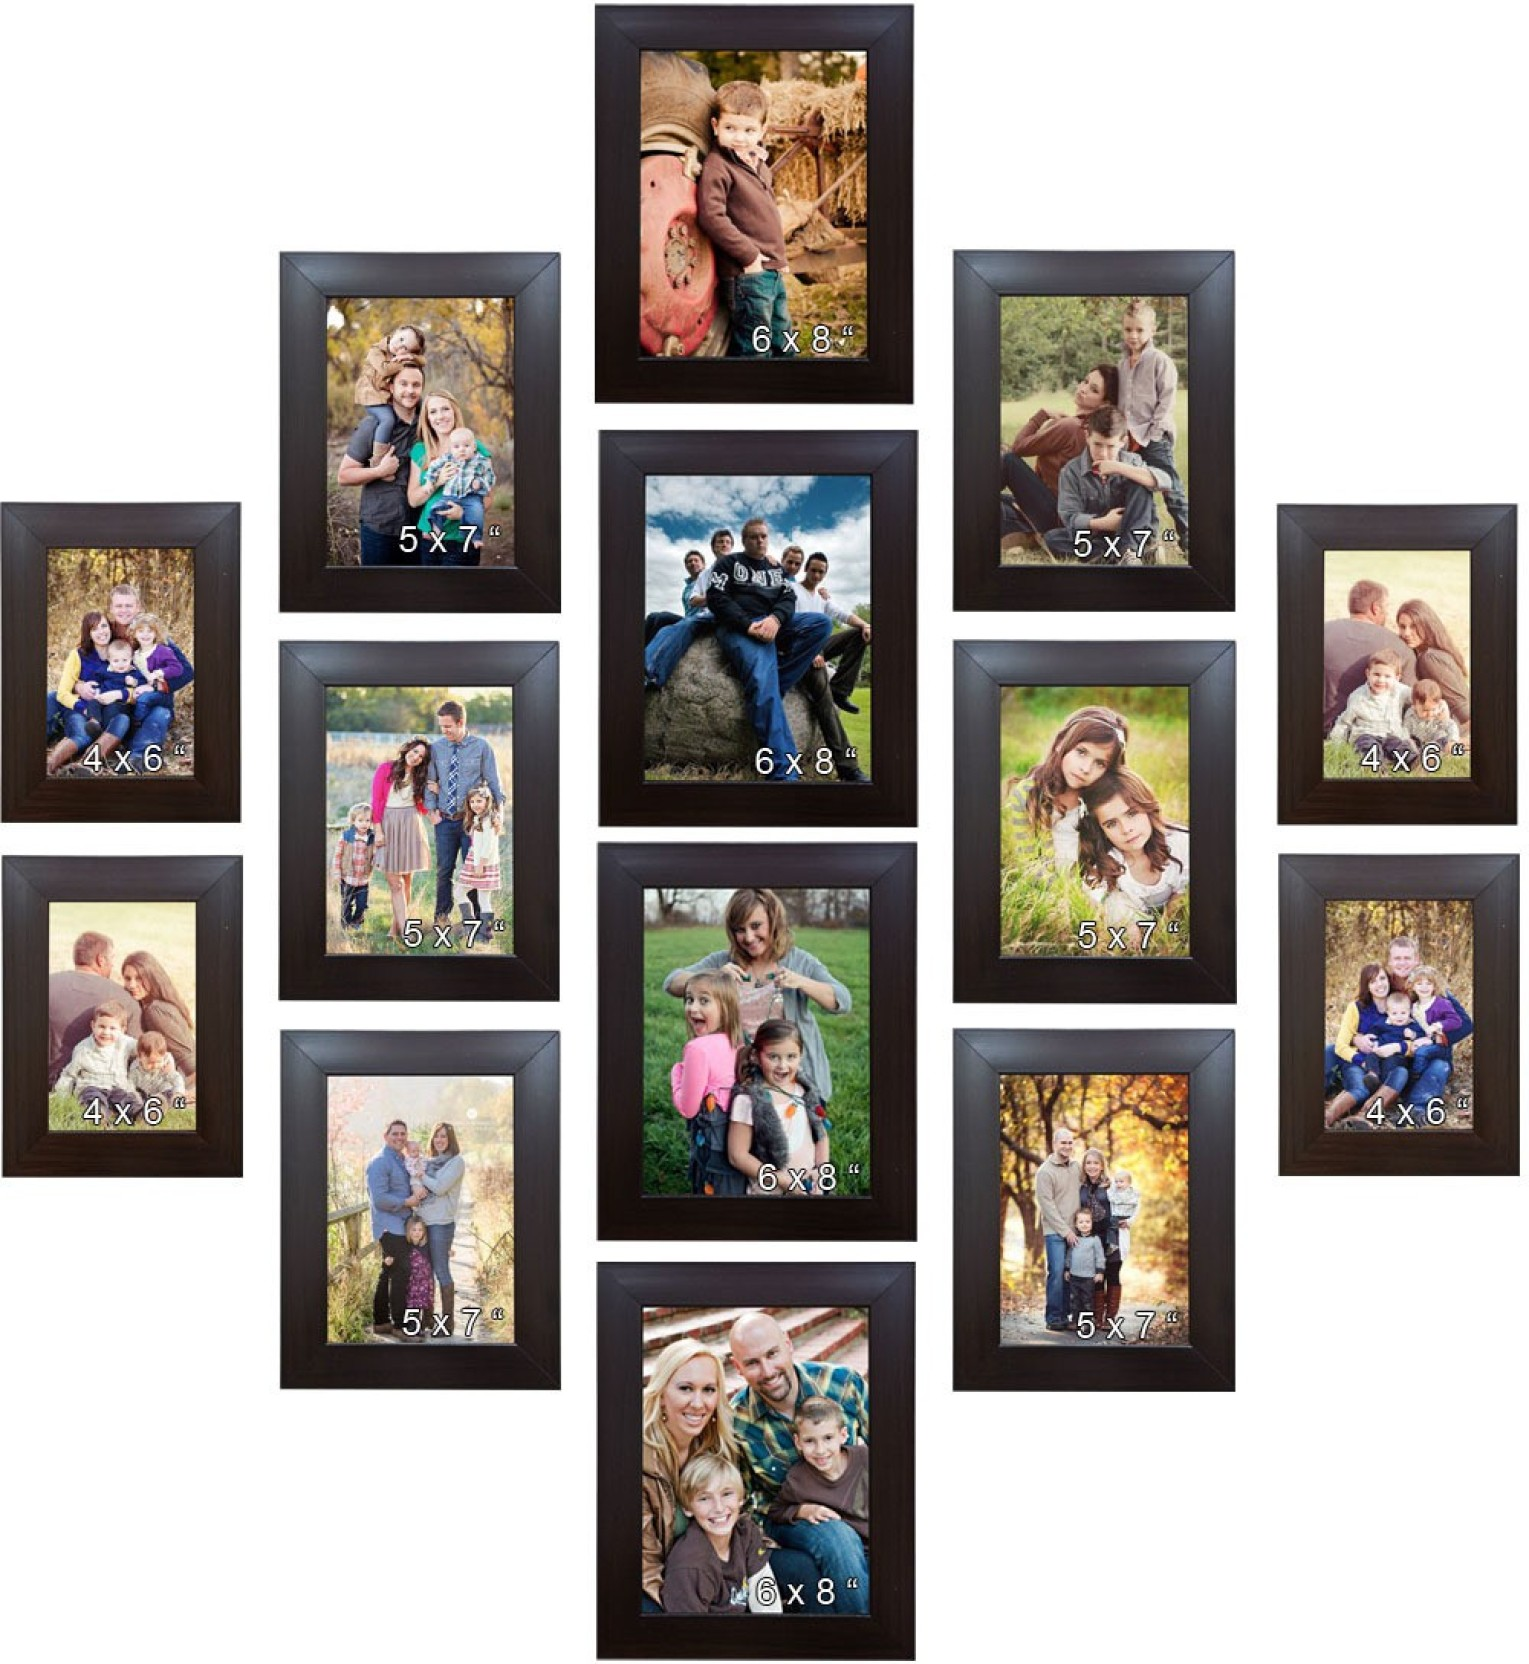 Home Decor For Less Online Trends On Wall Acrylic Photo Frame Price In India Buy